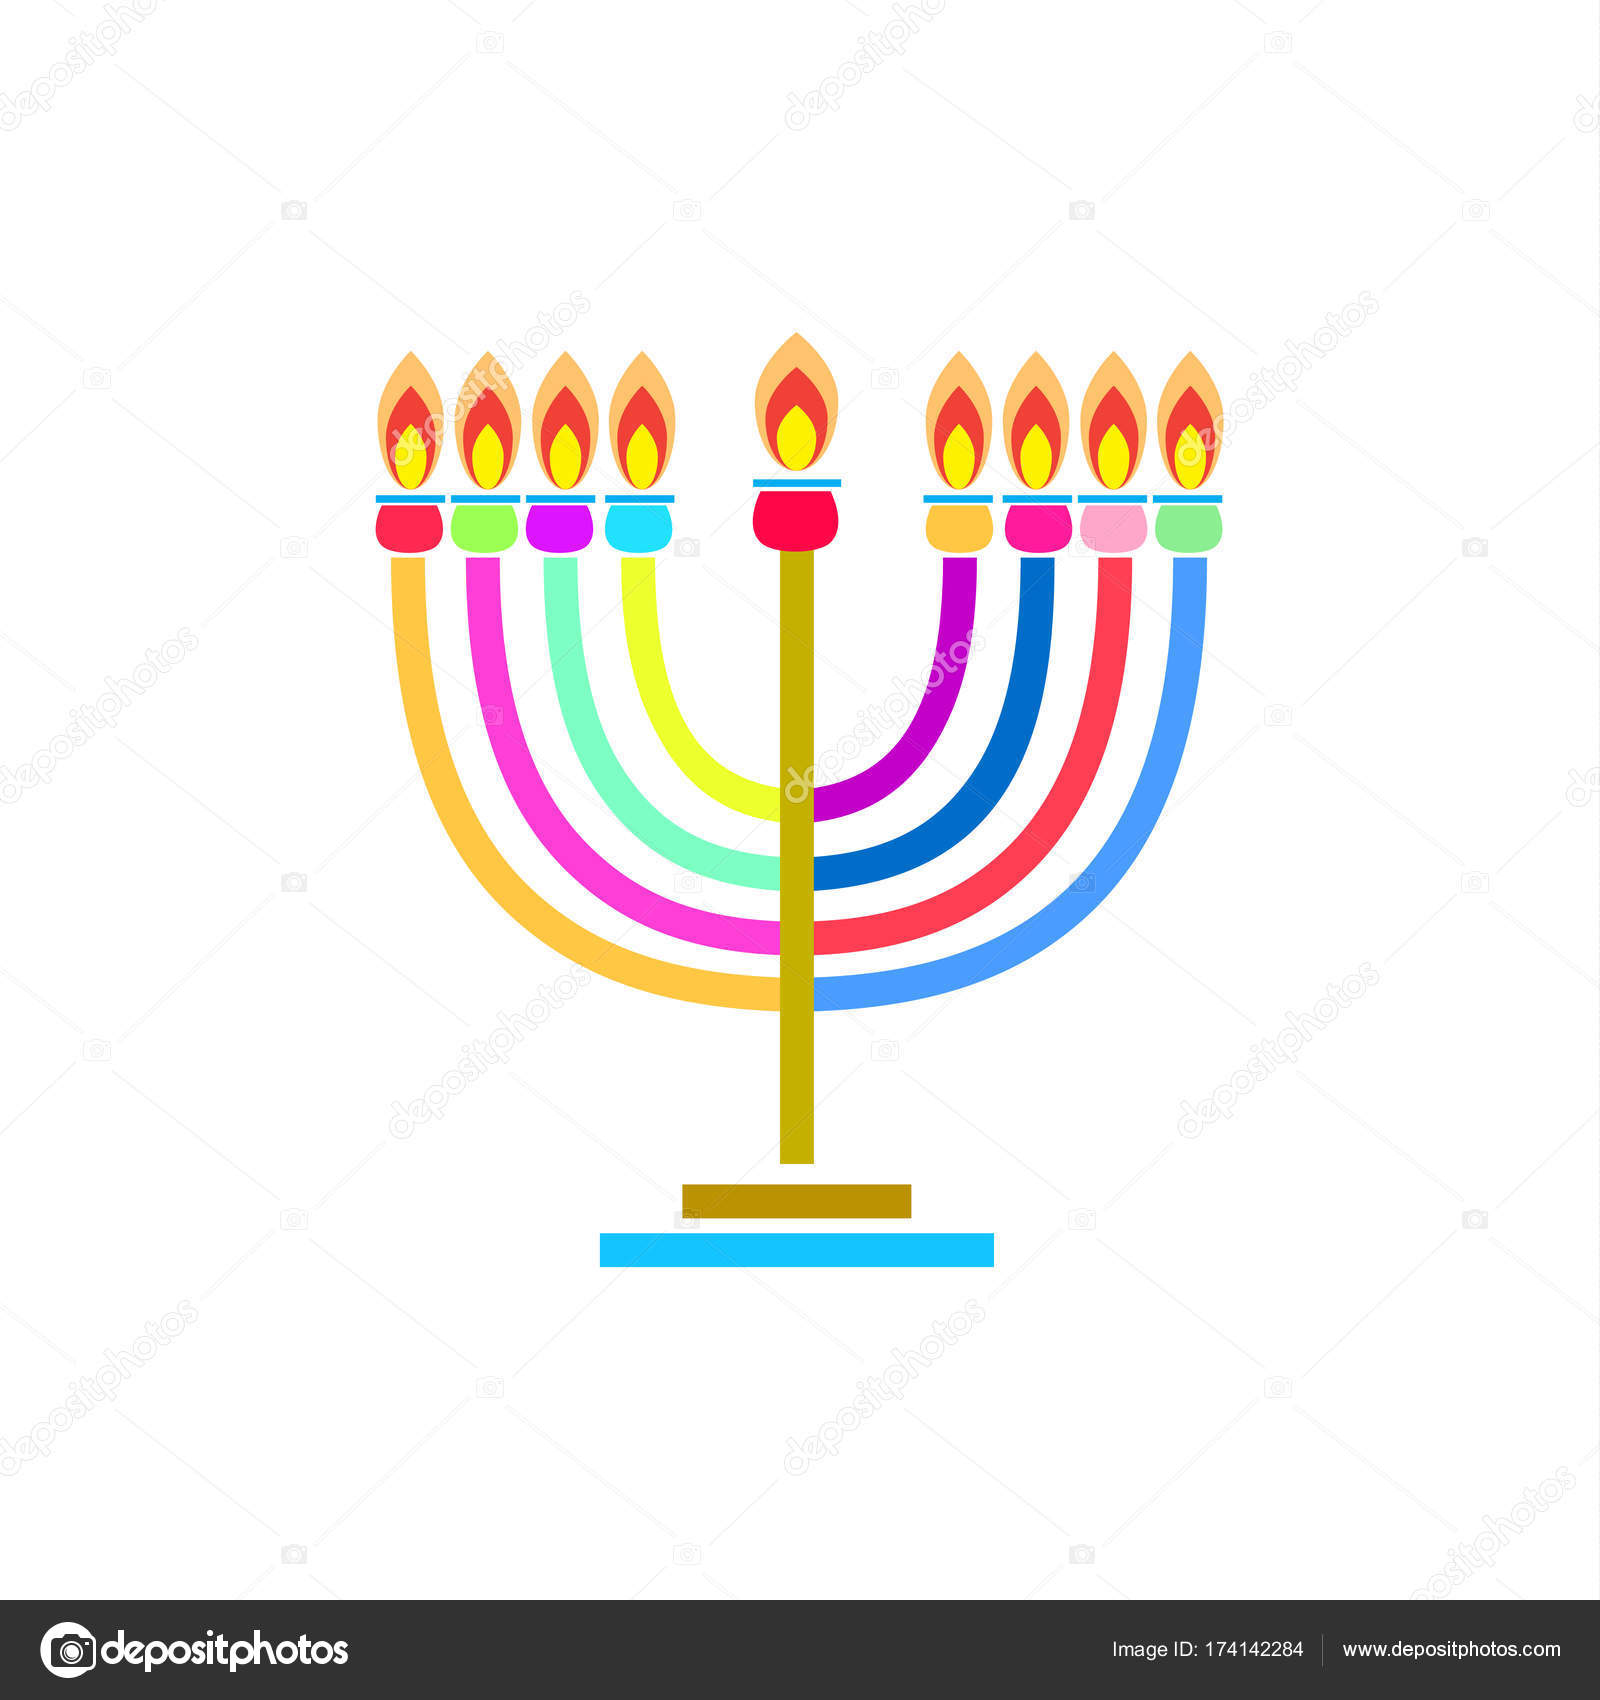 Menorah hanukkah holiday greeting poster with menorah menorah hanukkah holiday greeting poster with menorah menorah hanukkah icon jewish holiday symbol menorah light candelabra with candles silhouette isolated white m4hsunfo